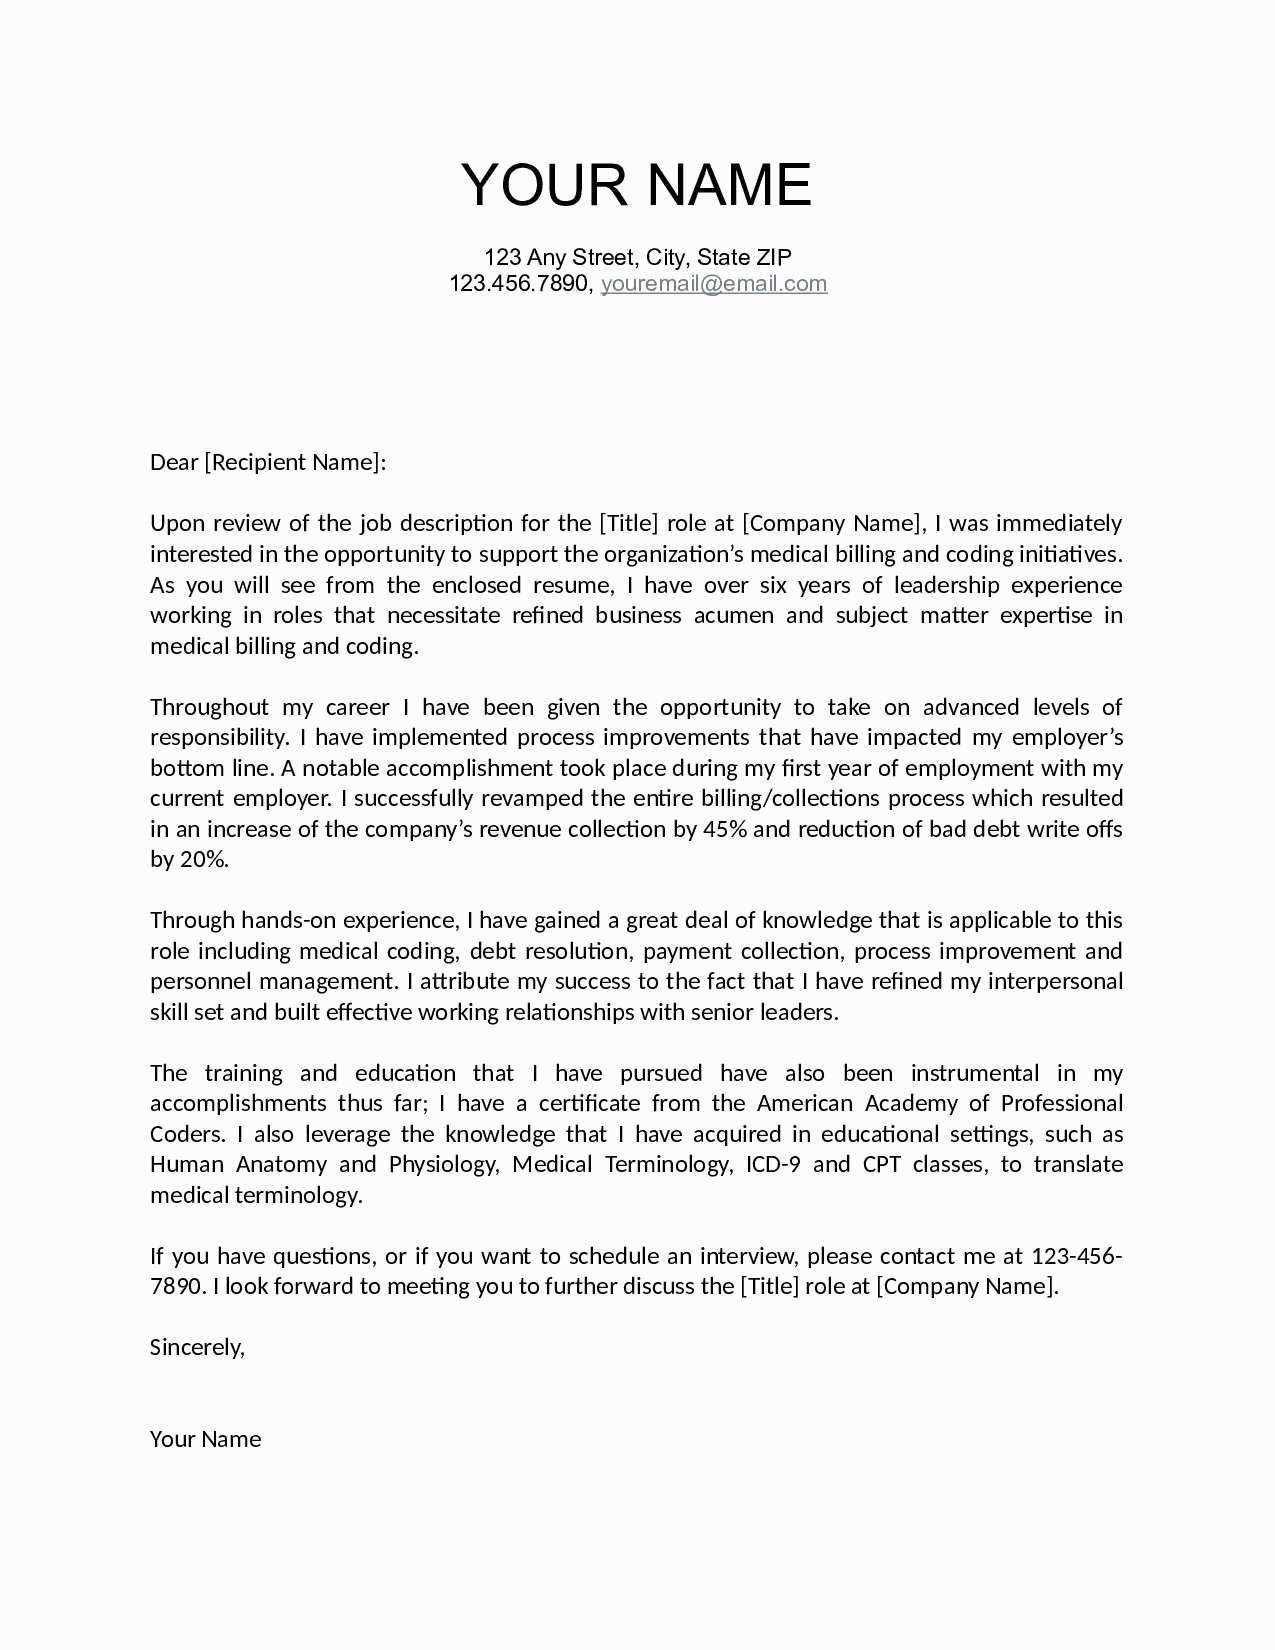 Executive Cover Letter Template - Sample Cover Letter for Senior Manager Position Save Job Fer Letter